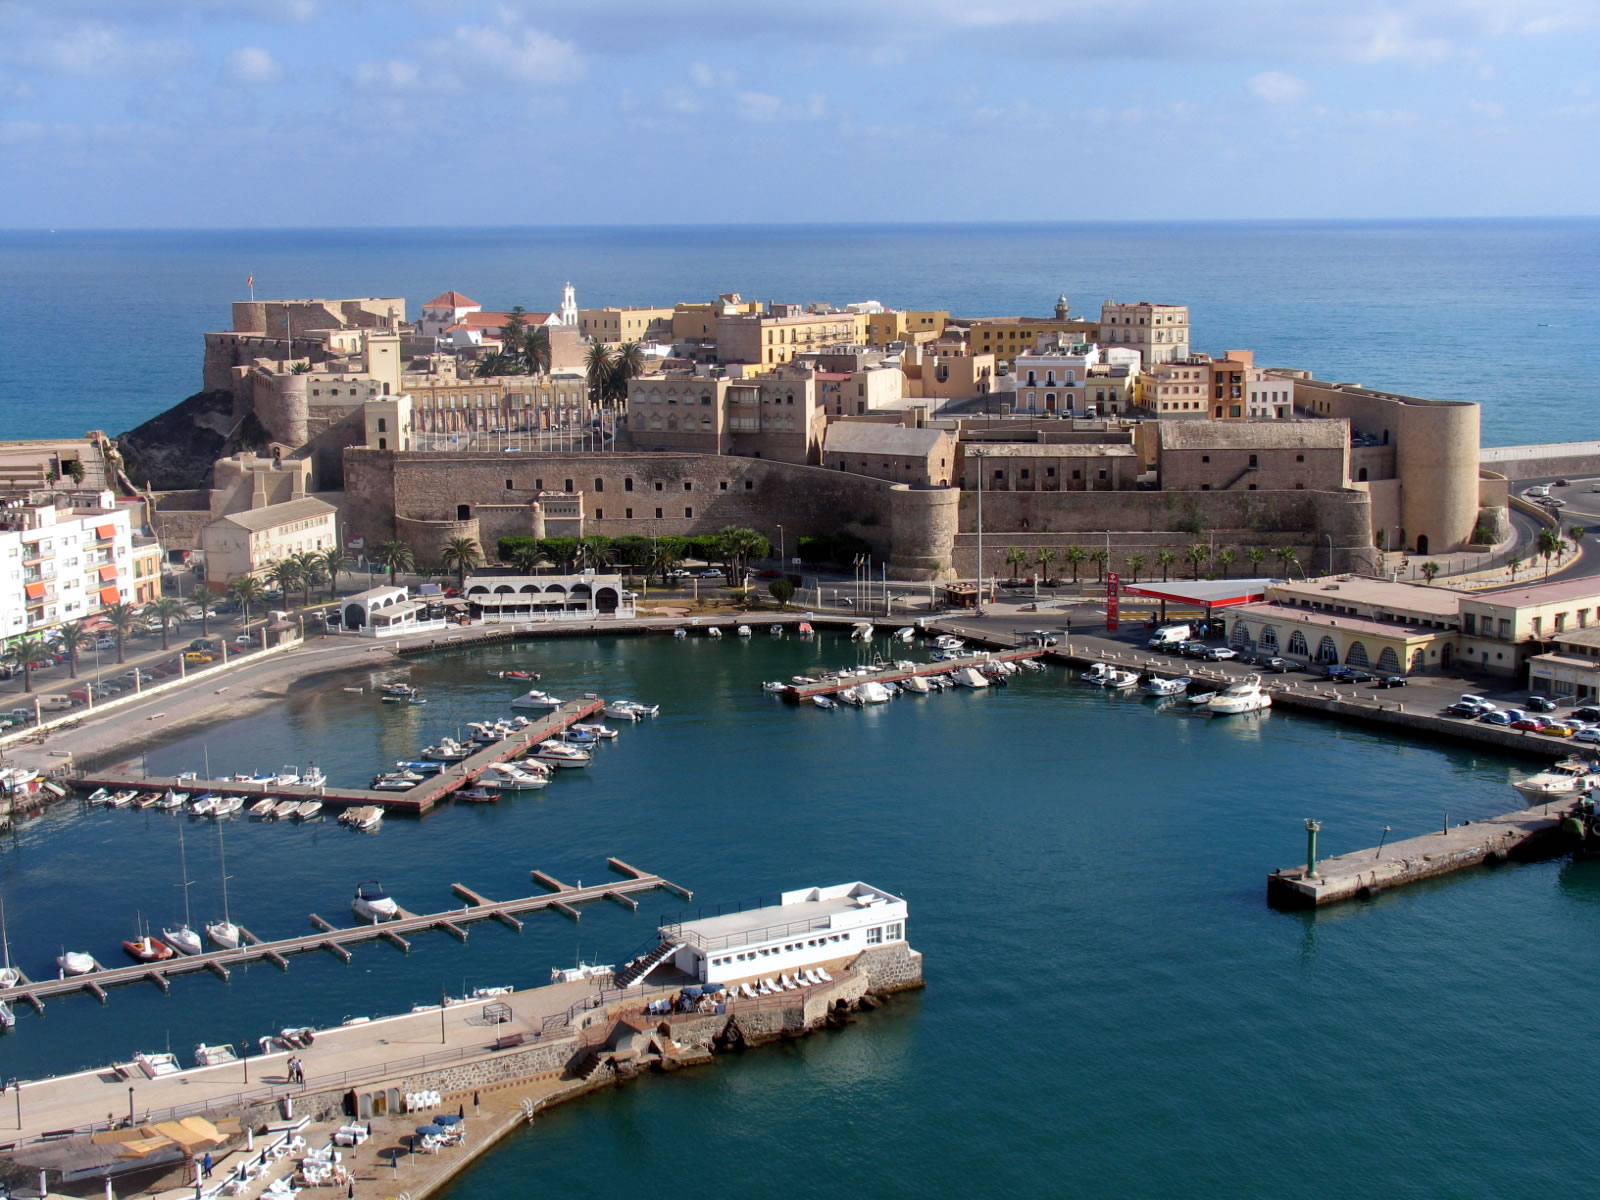 Melilla - 5 Things to see and do